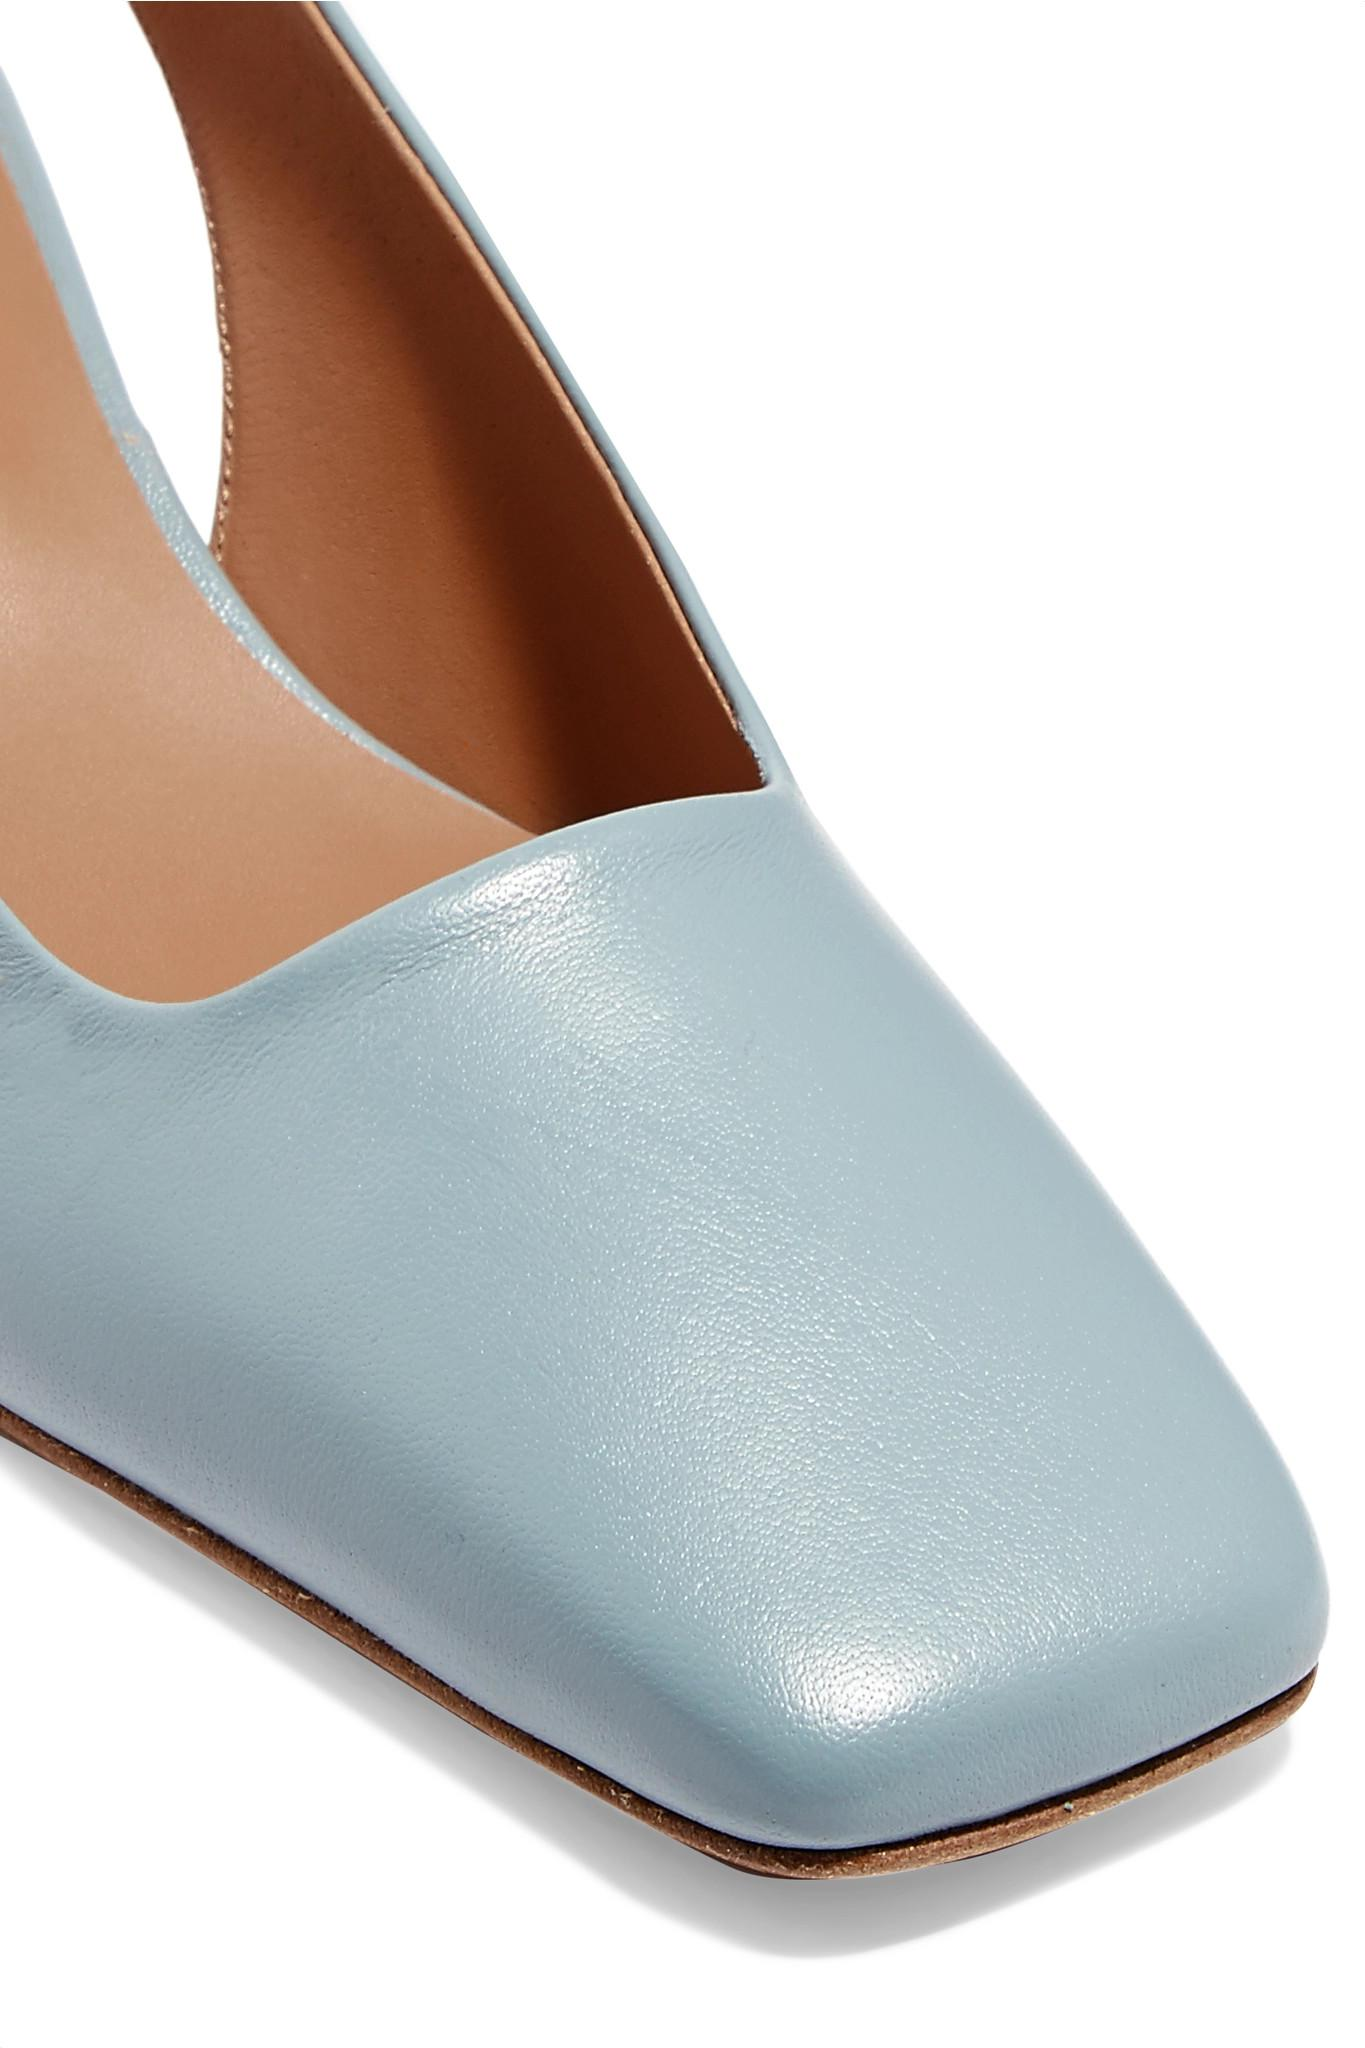 7c27ee18d129 Lyst - BY FAR Danielle Leather Slingback Pumps in Blue